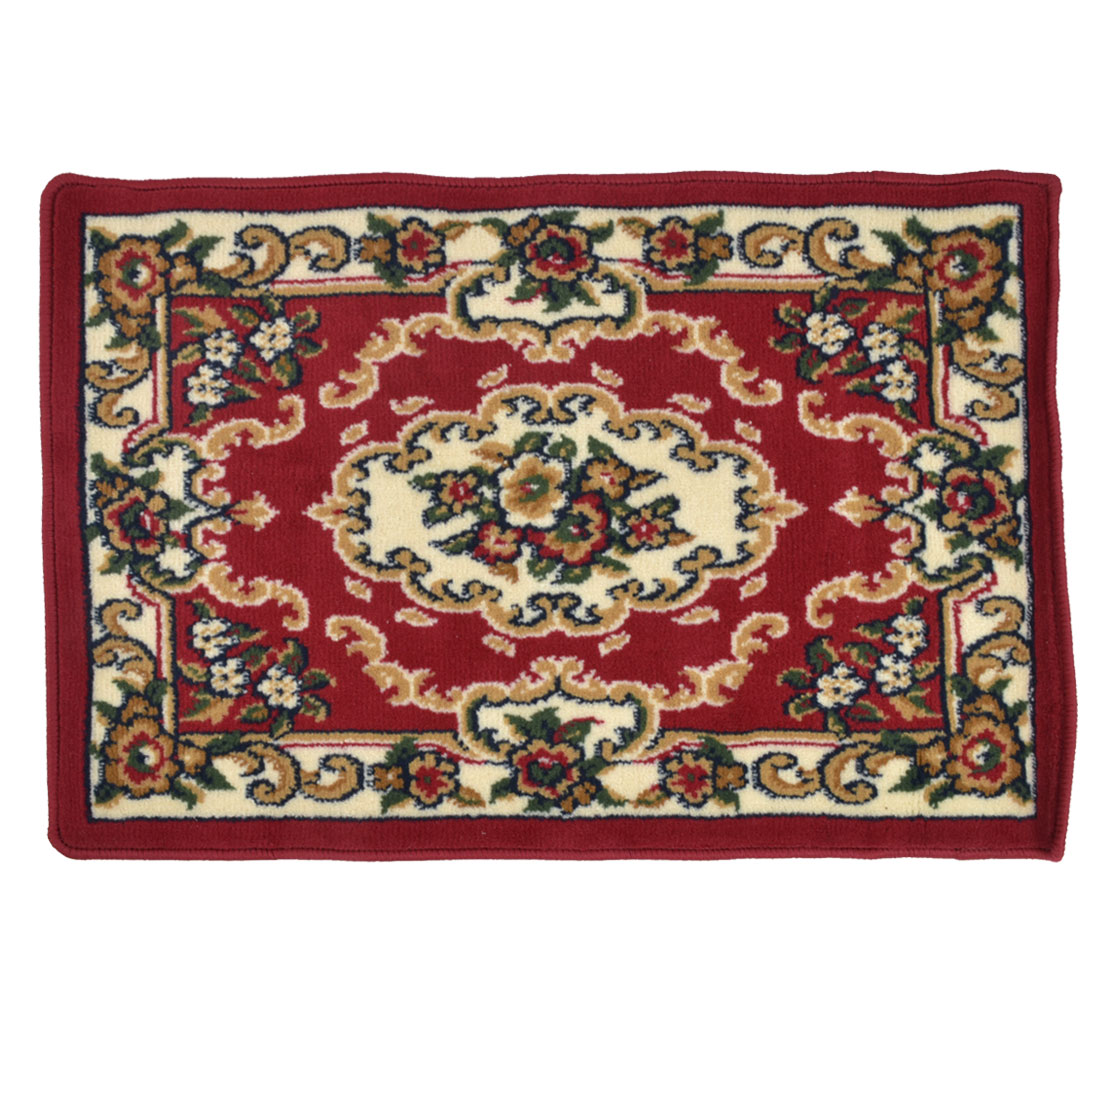 European Style Red Flower Pattern Living Room Area Rug Carpet 90cm x 60cm